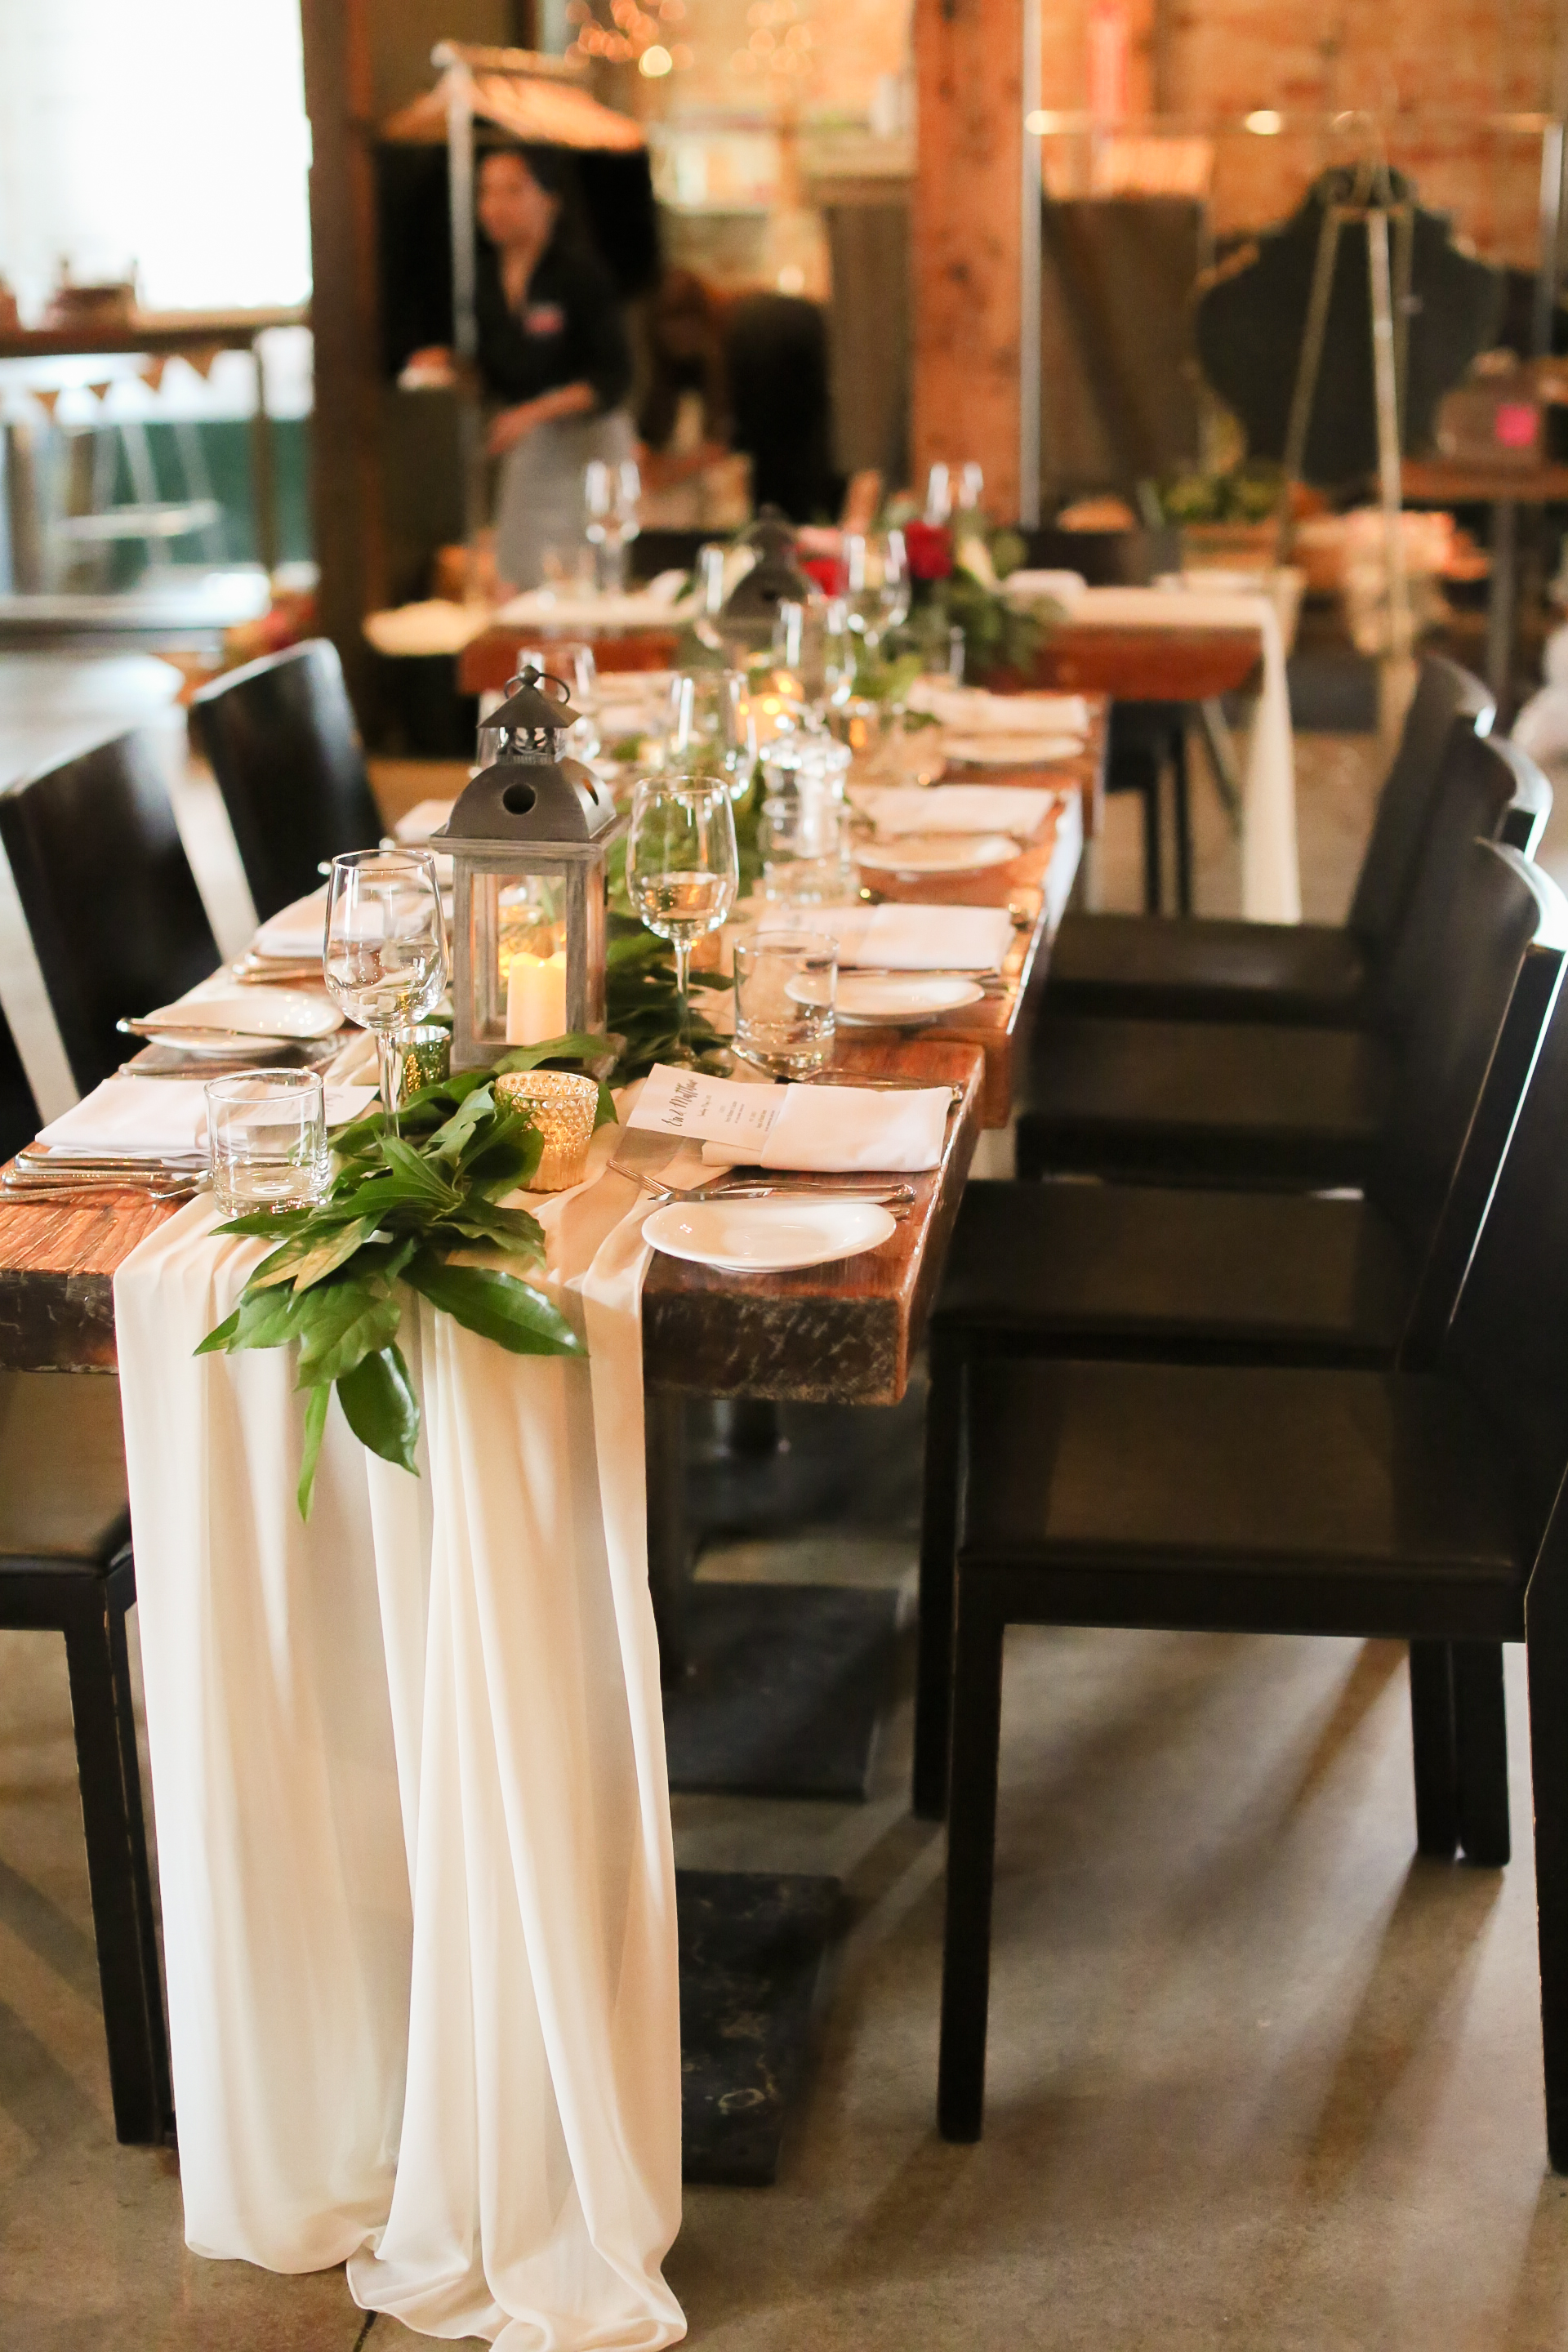 Archeo Toronto Wedding Rustic Wedding Decor Floral Vintagebash